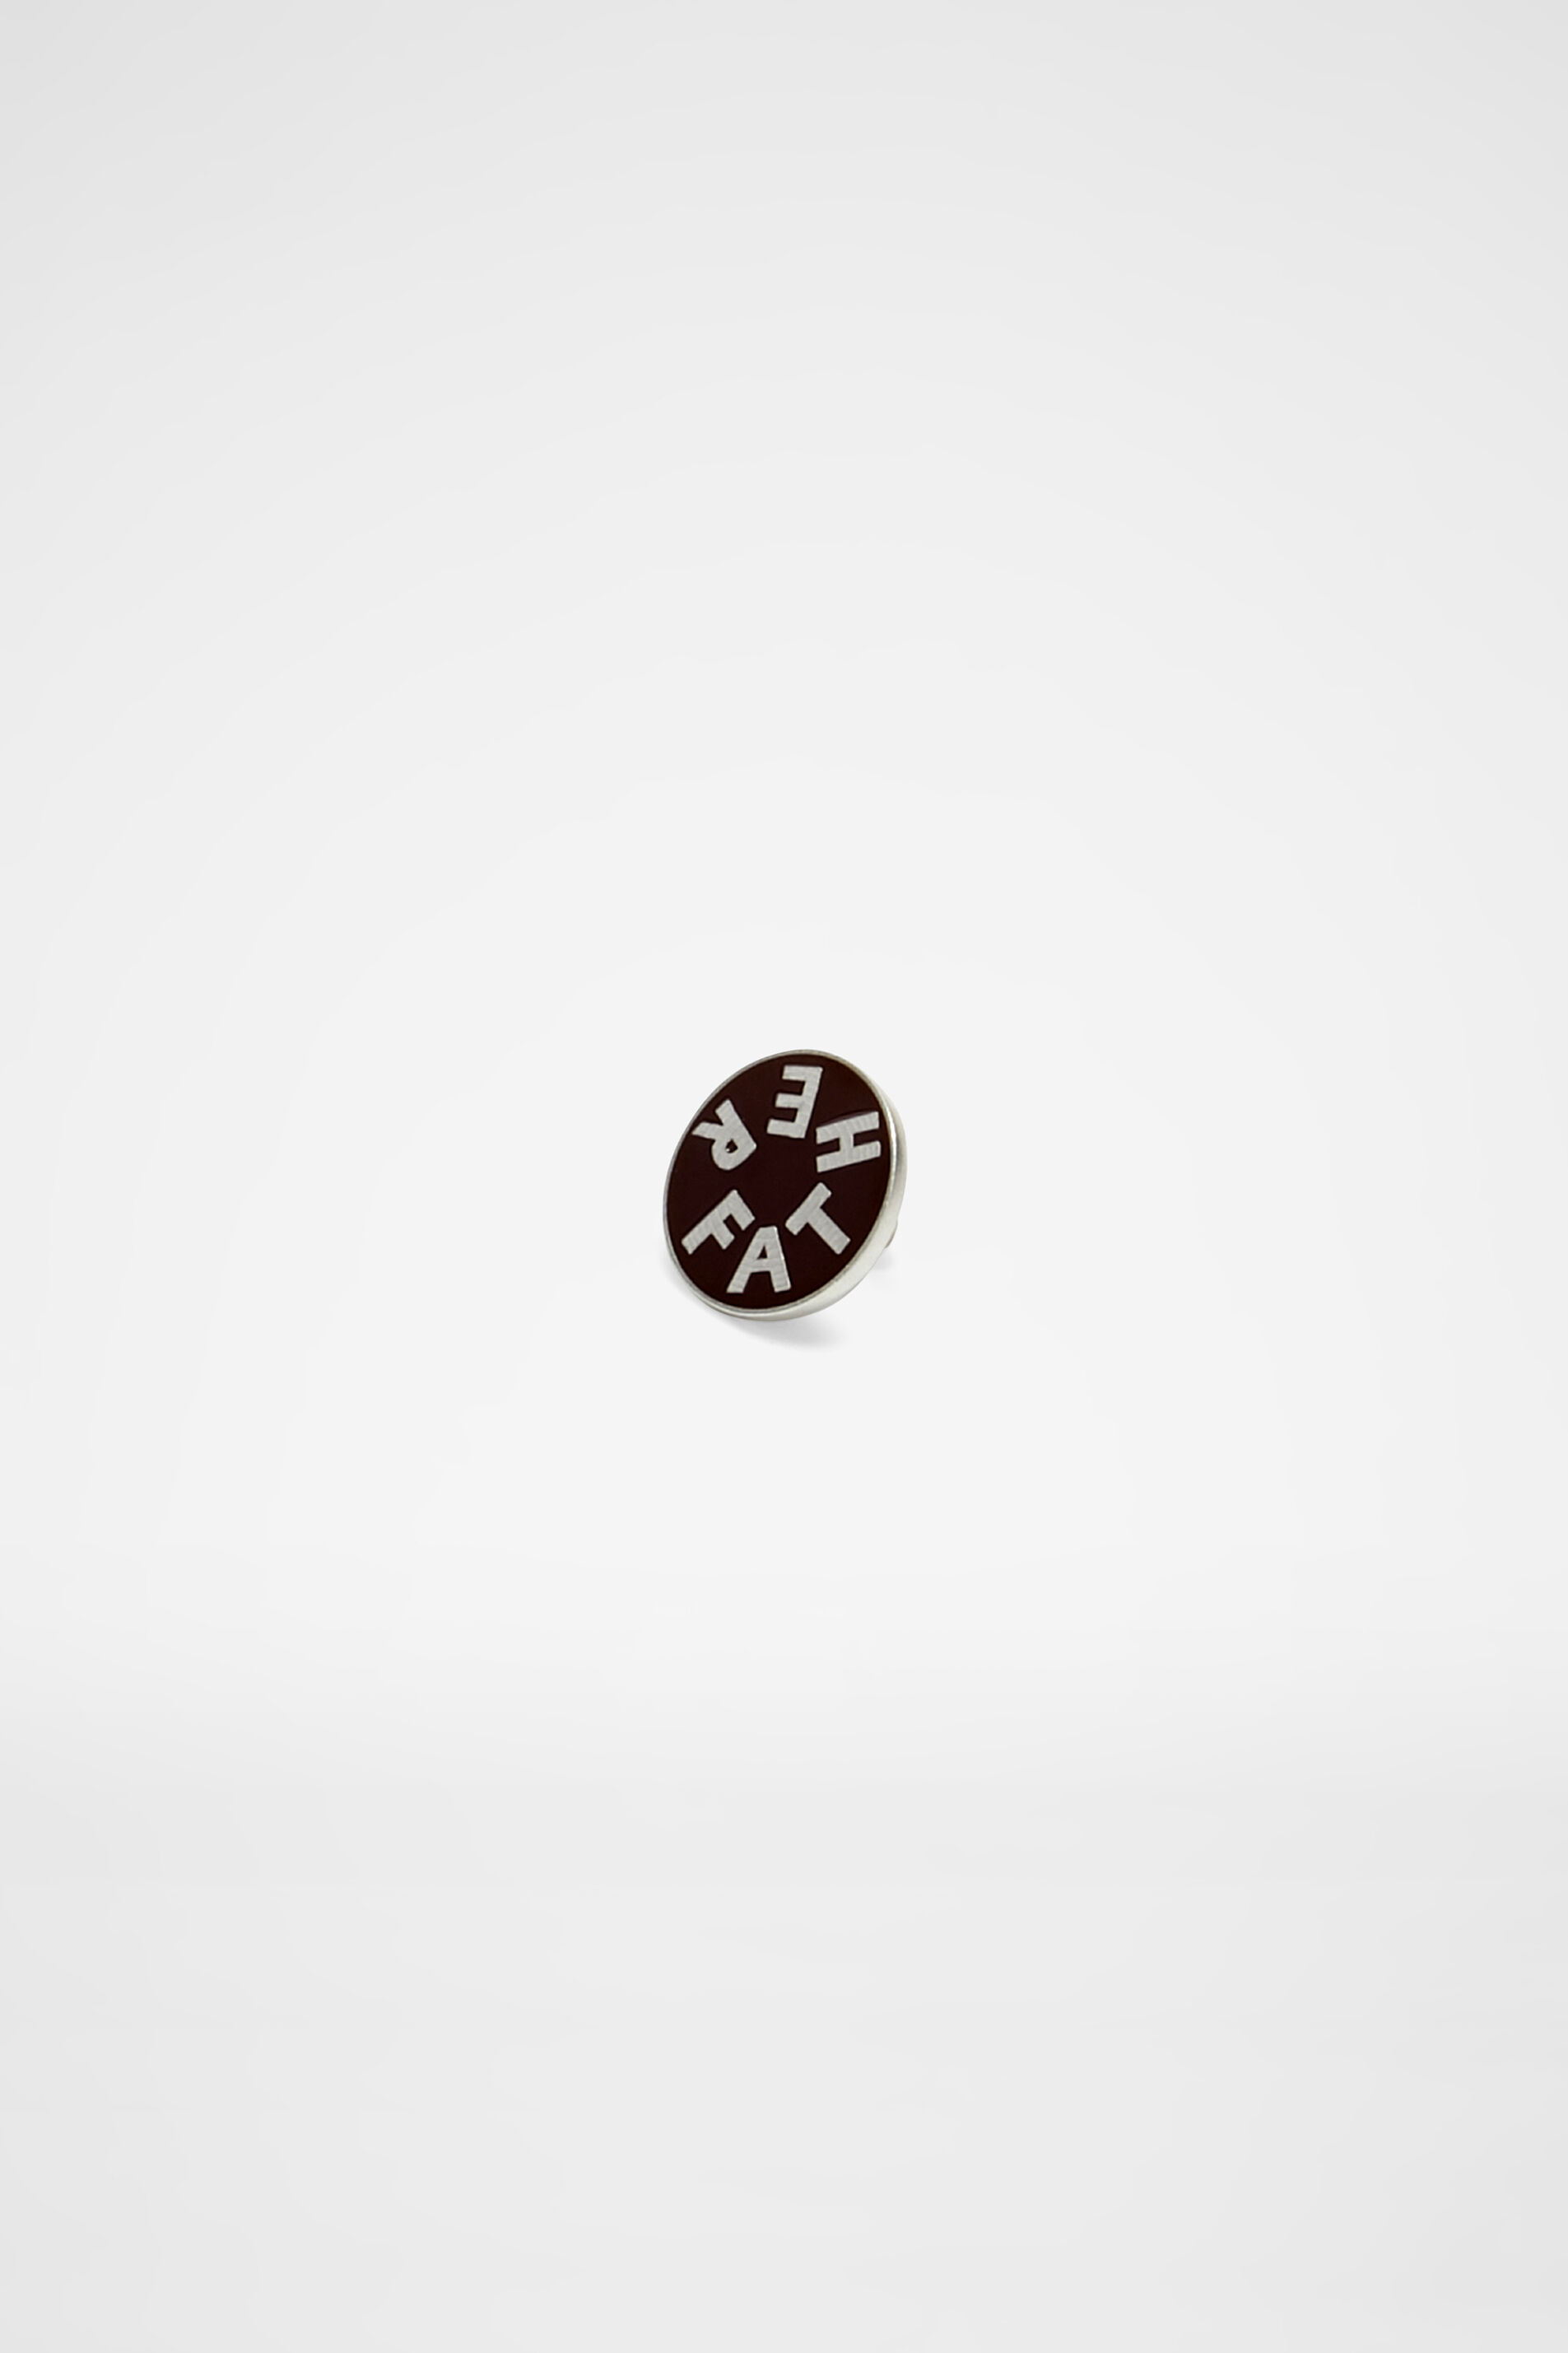 Pin Father, dark brown, large